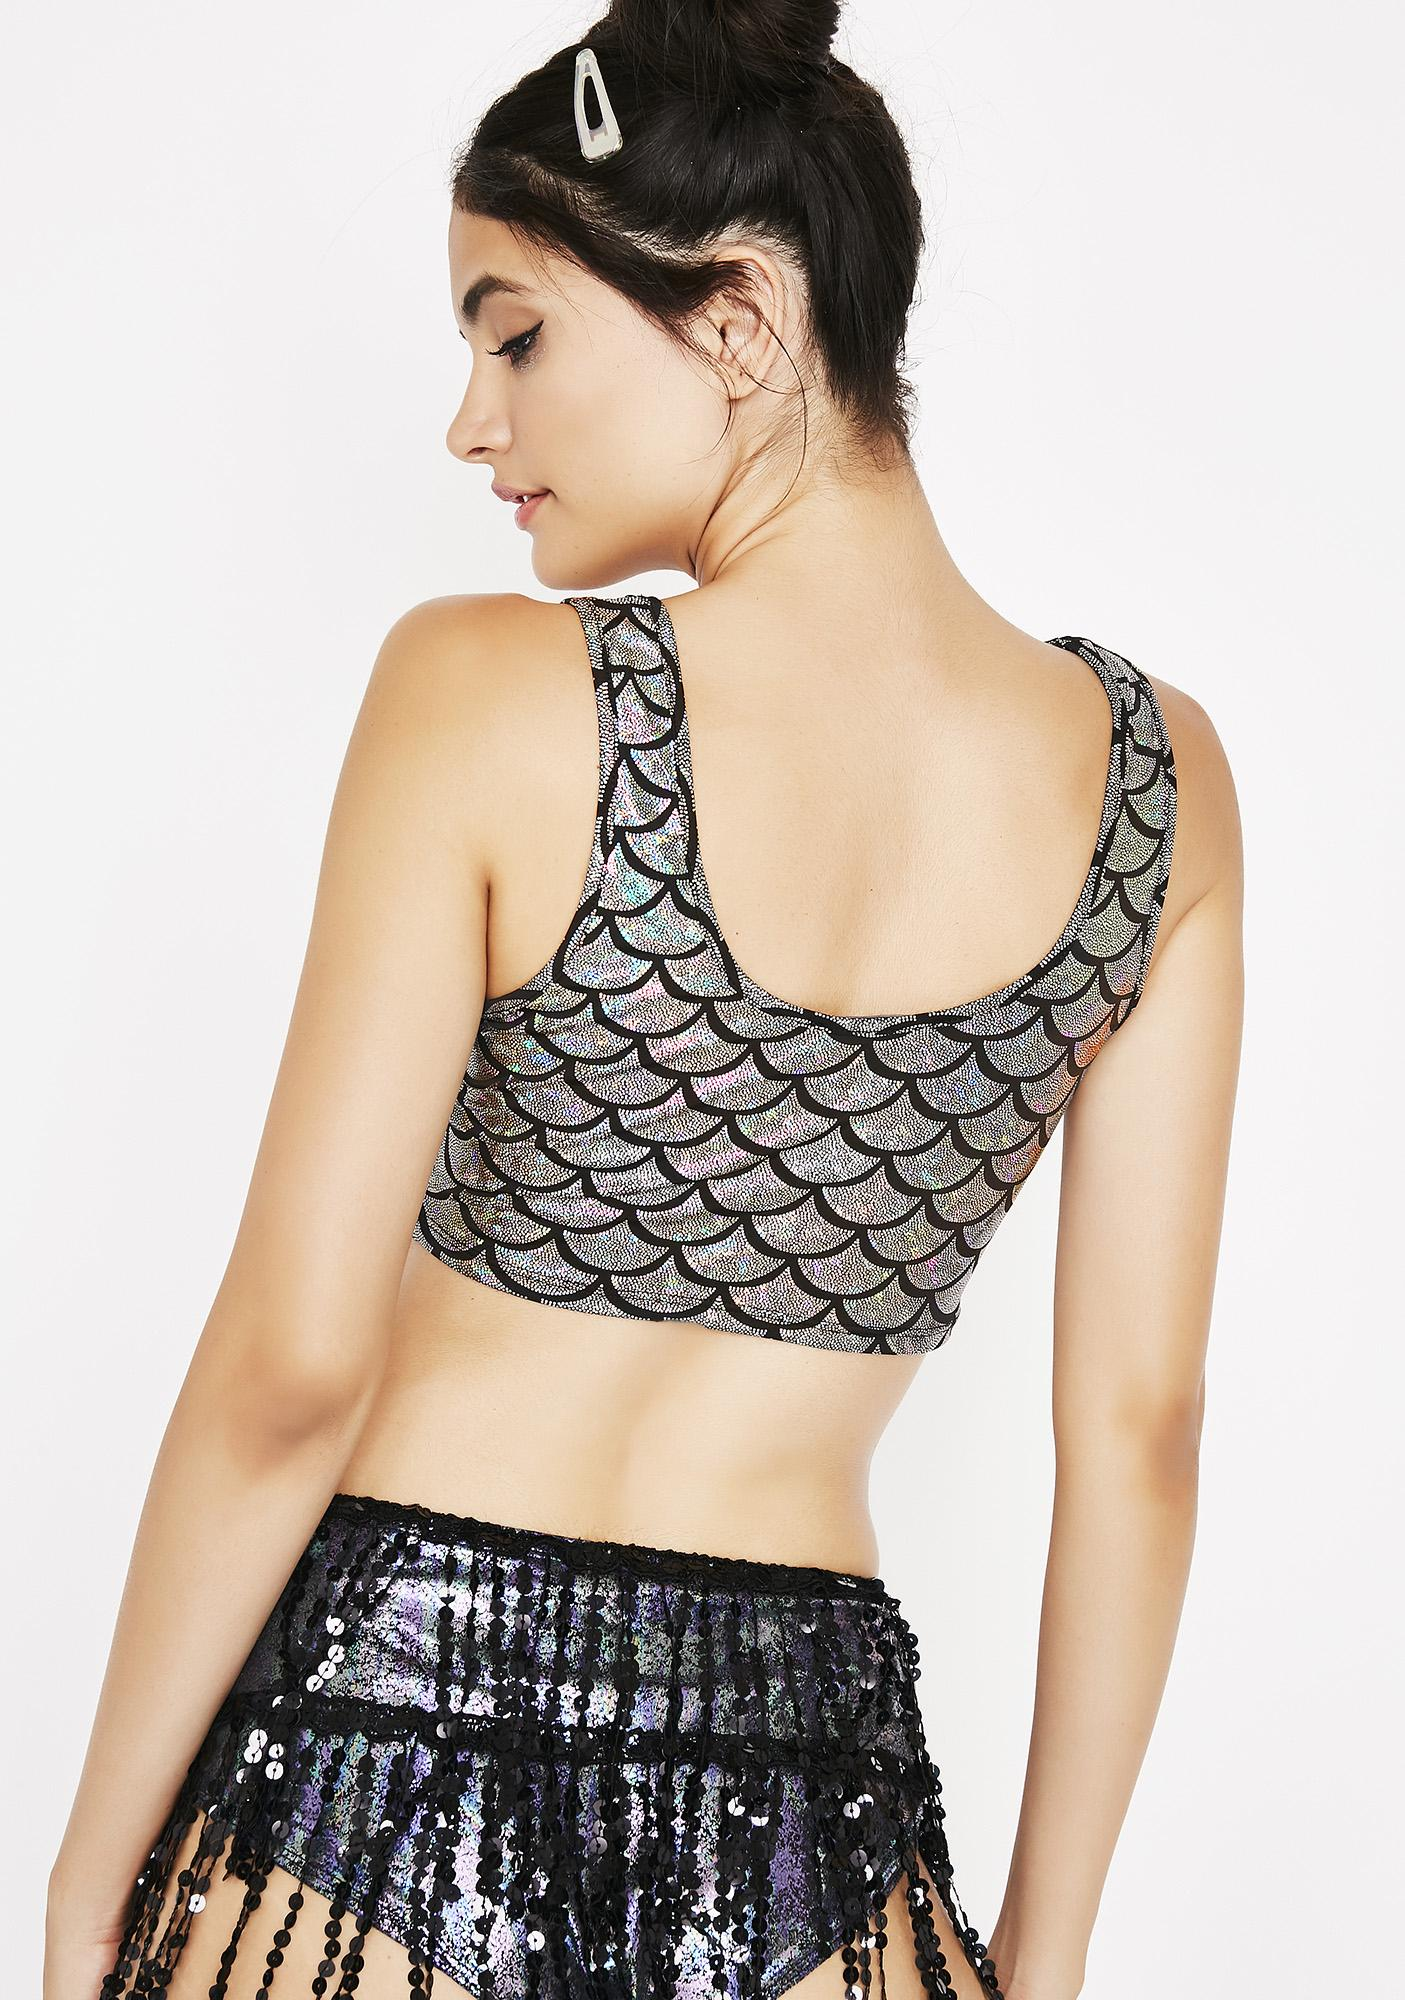 Chrome Mermaid Fantasy Crop Top